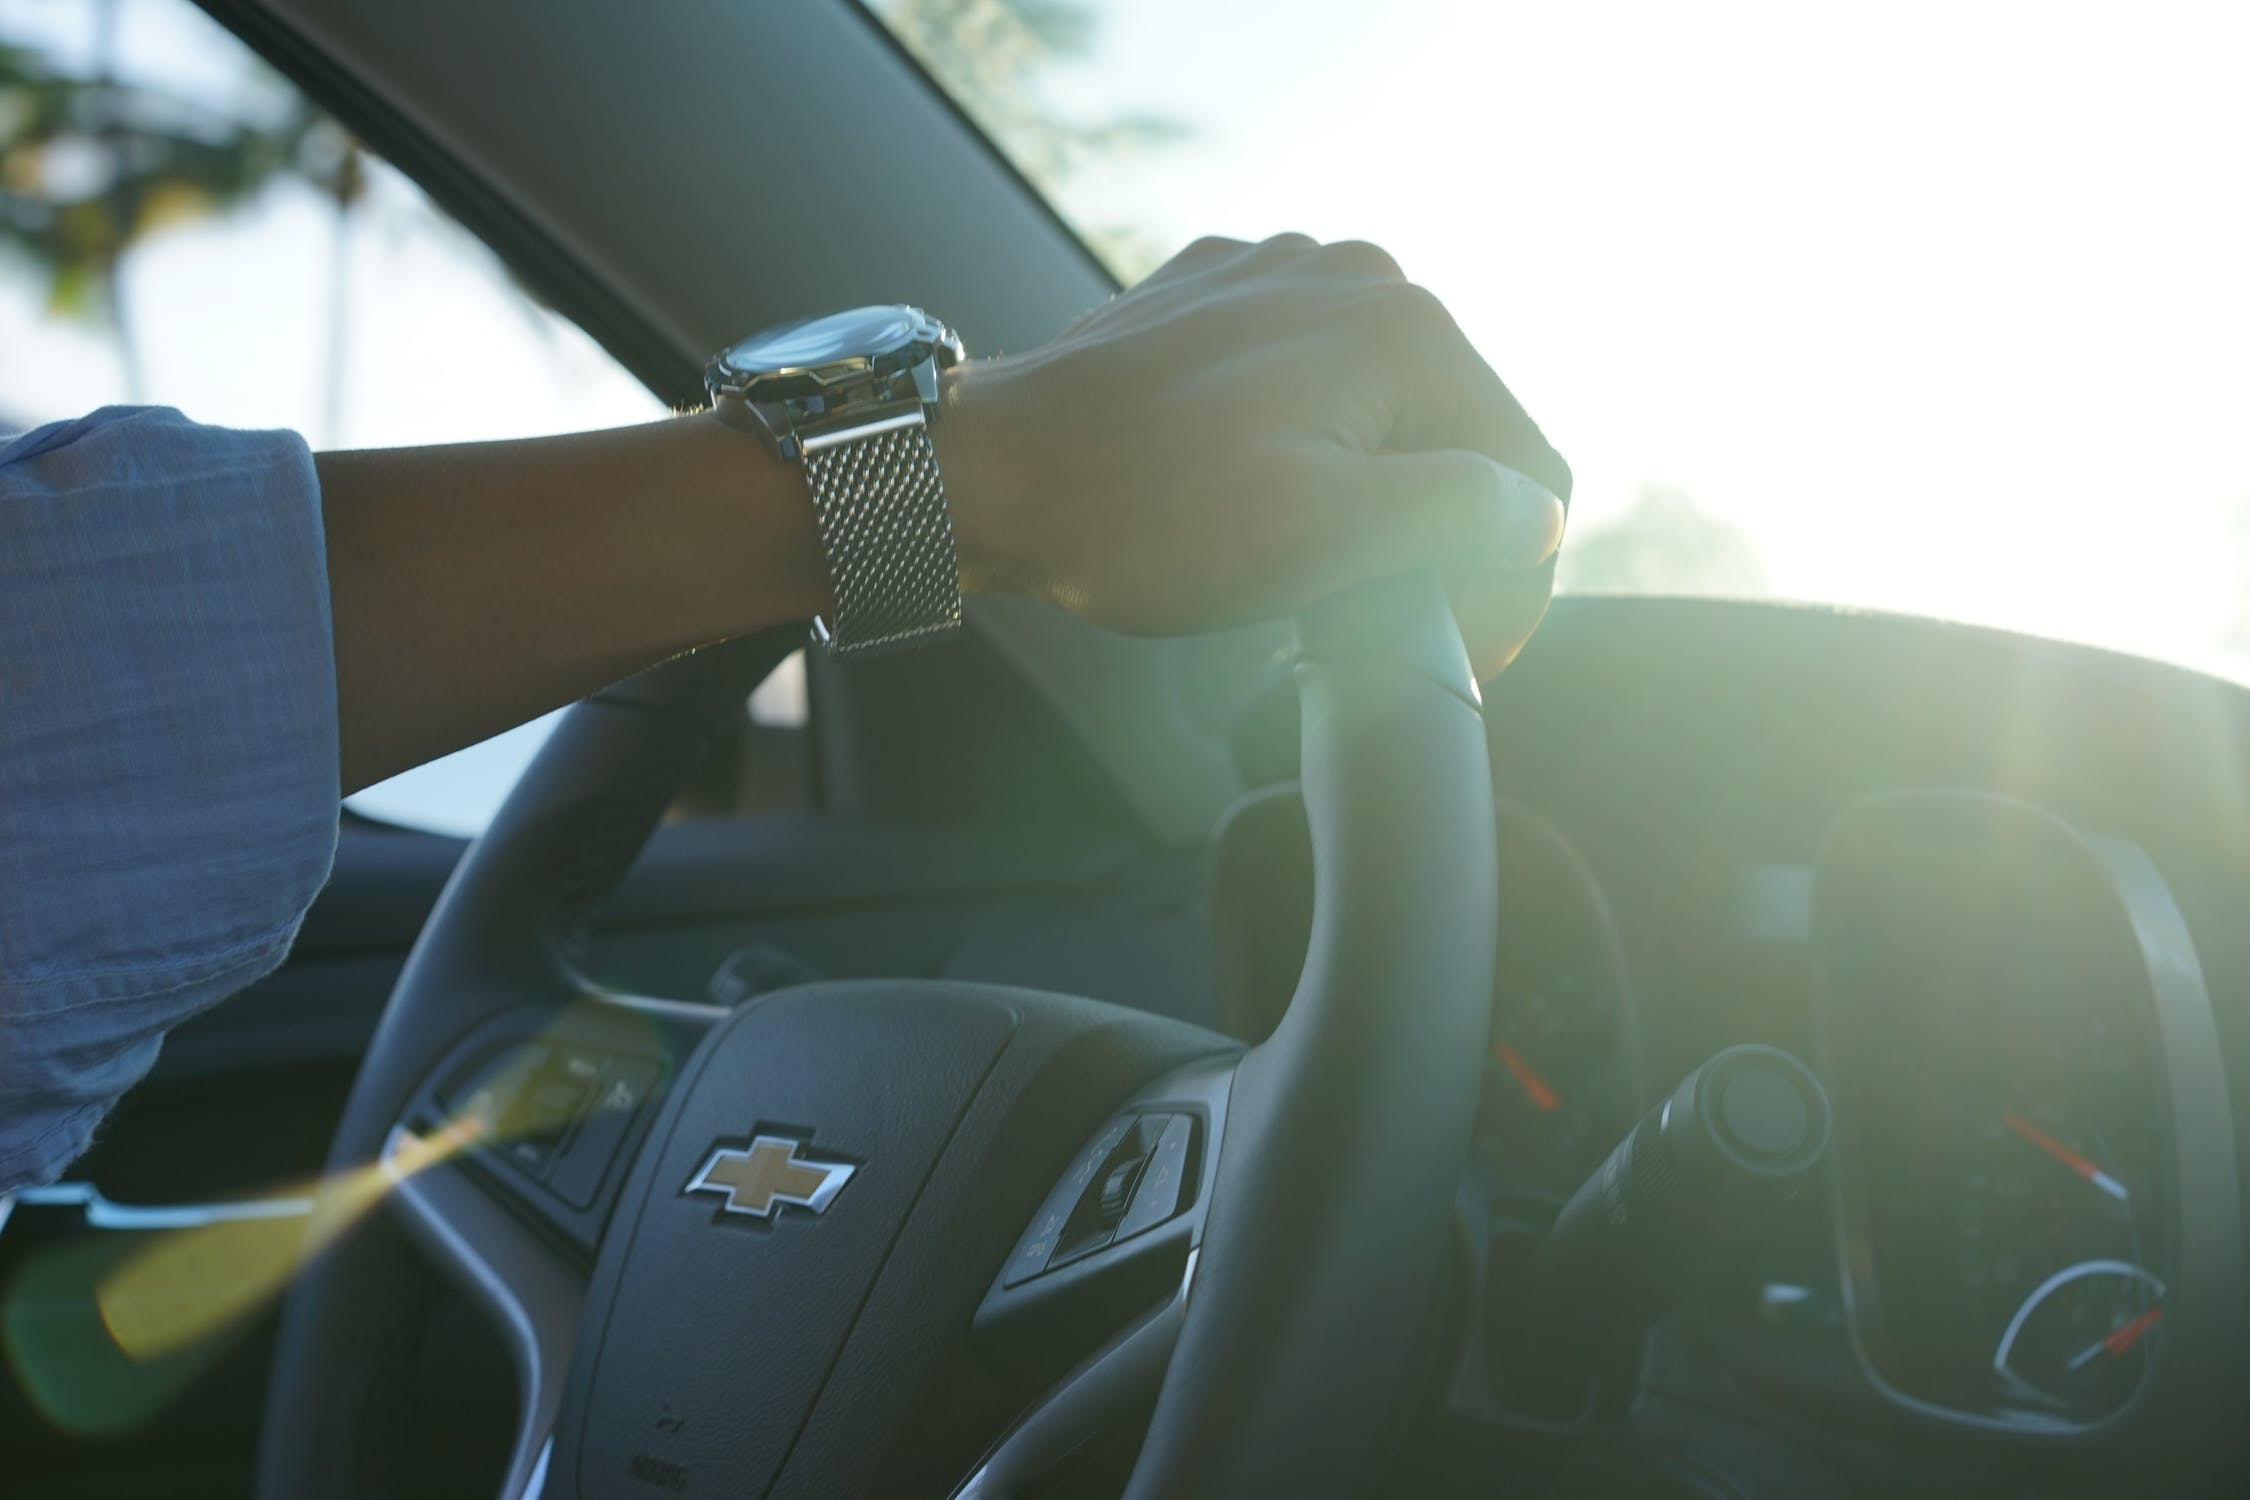 Are You Practicing Sun Safety and Protecting Your Skin While Driving?